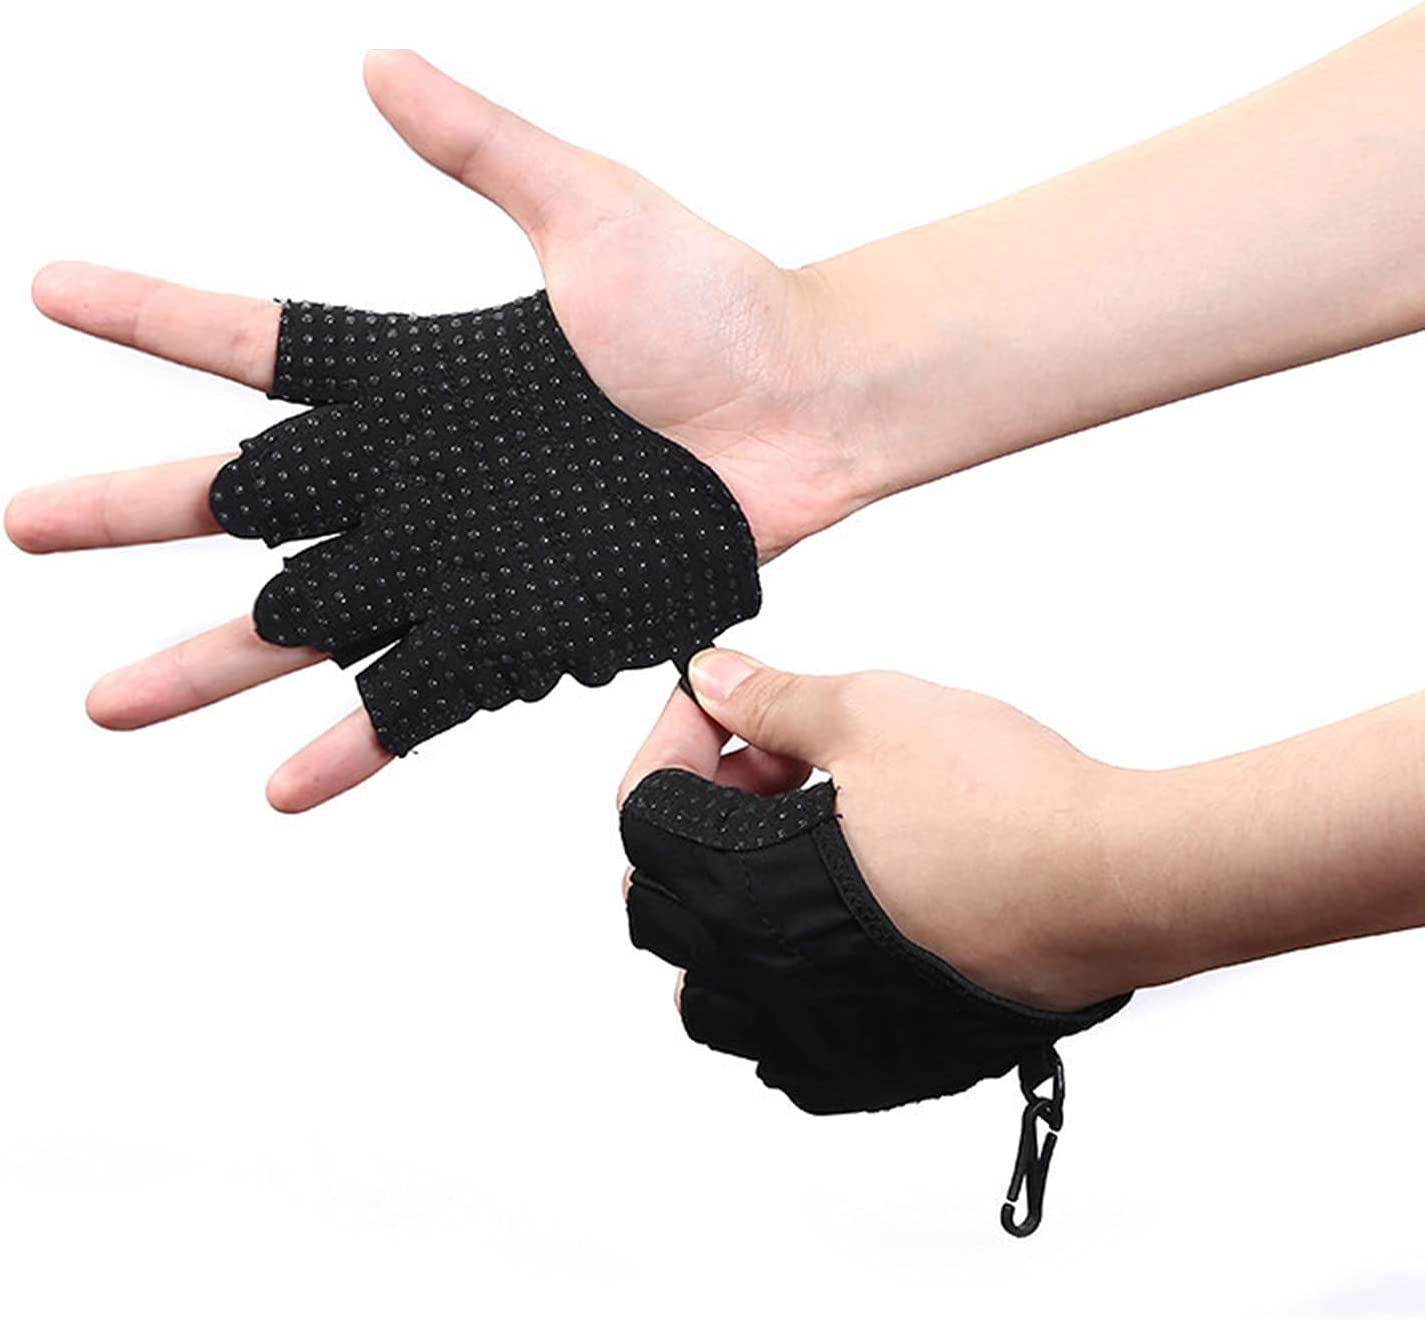 OhhGo Men Women Weightlifting Gym Popular shop is the lowest price challenge Workout for Chicago Mall Gloves Slip Anti-